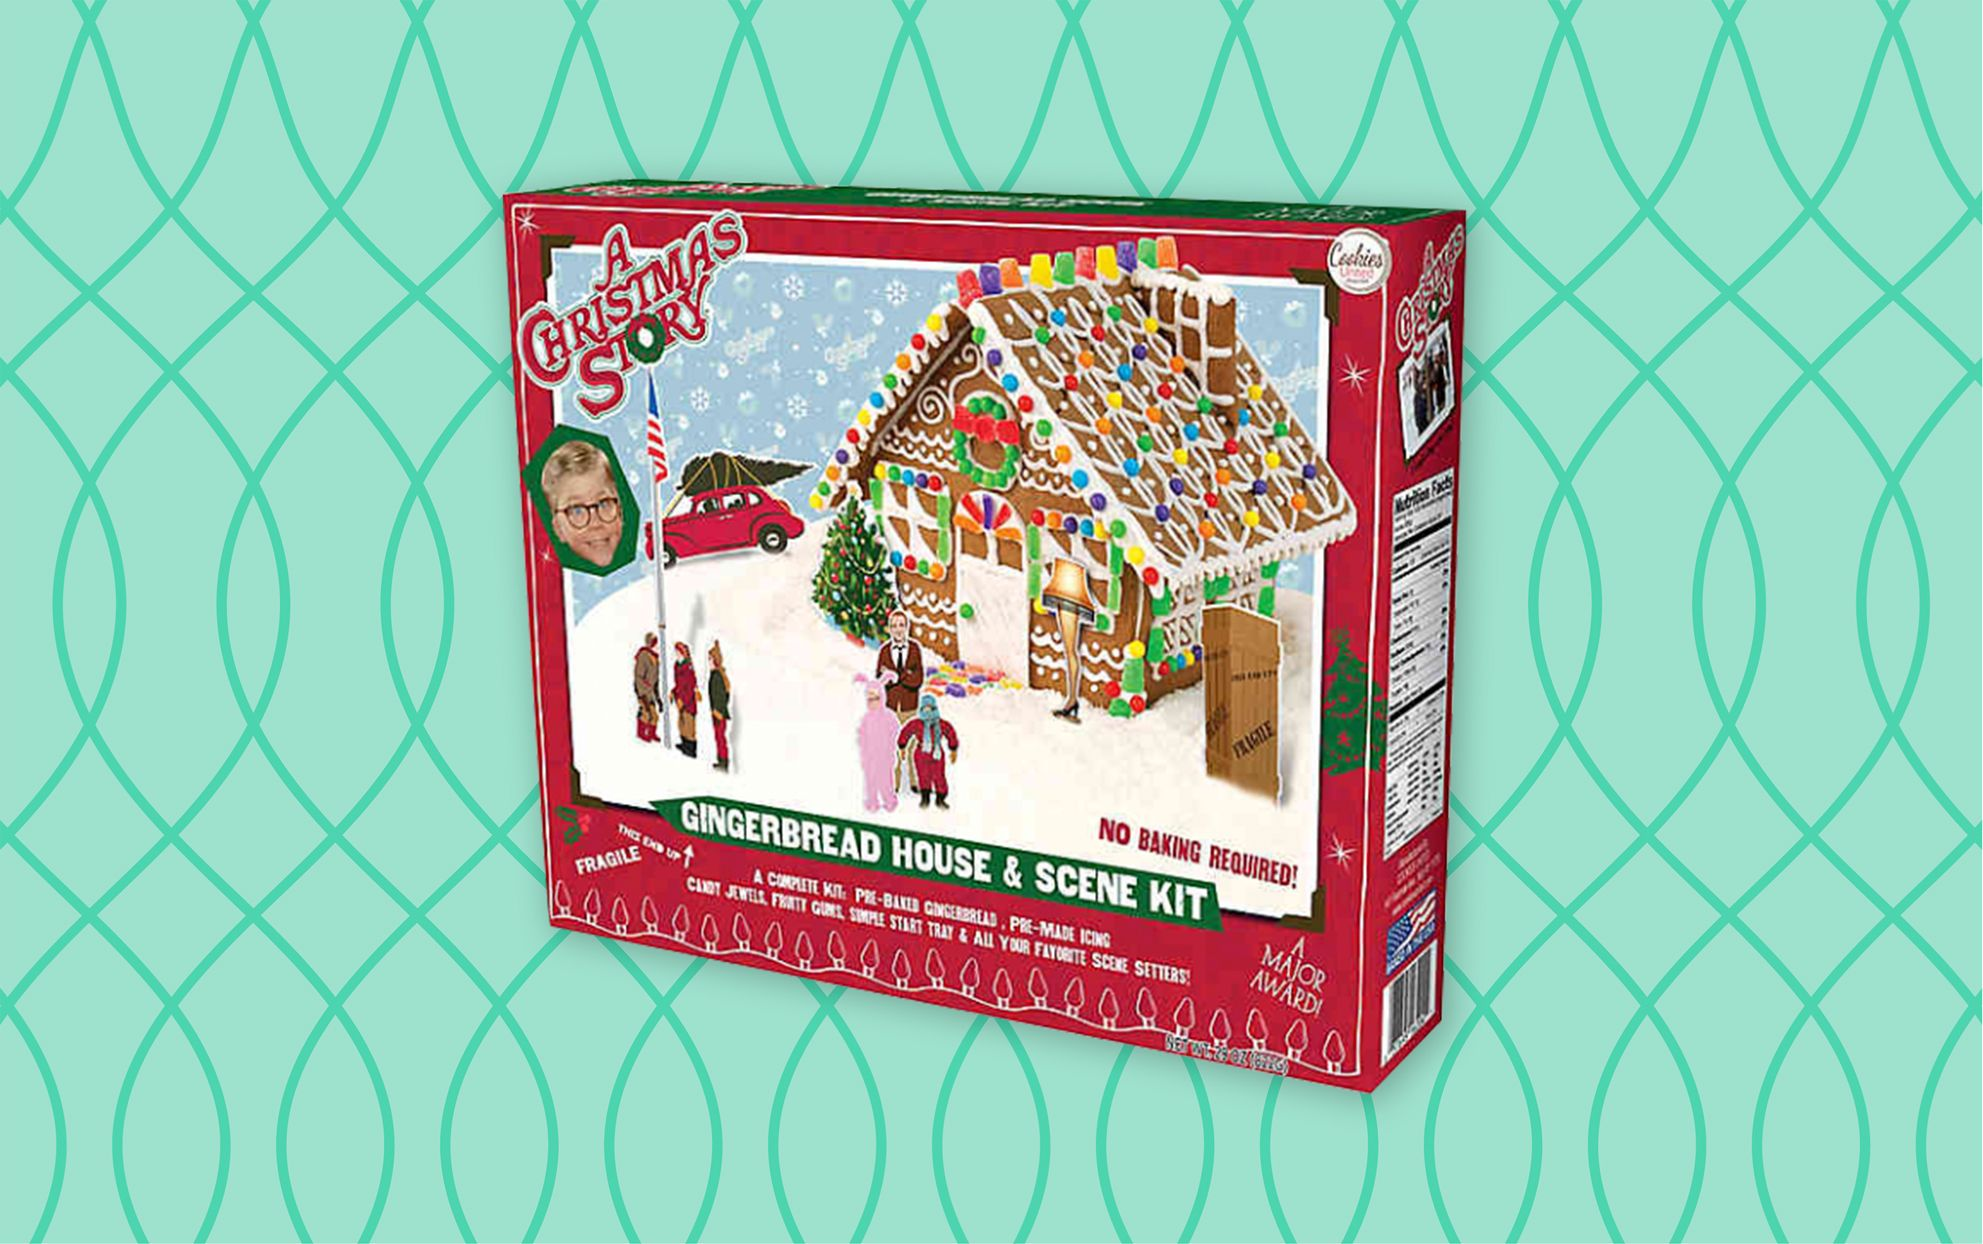 Gingerbread Boy Cookie Kit 21046830 Country Kitchen